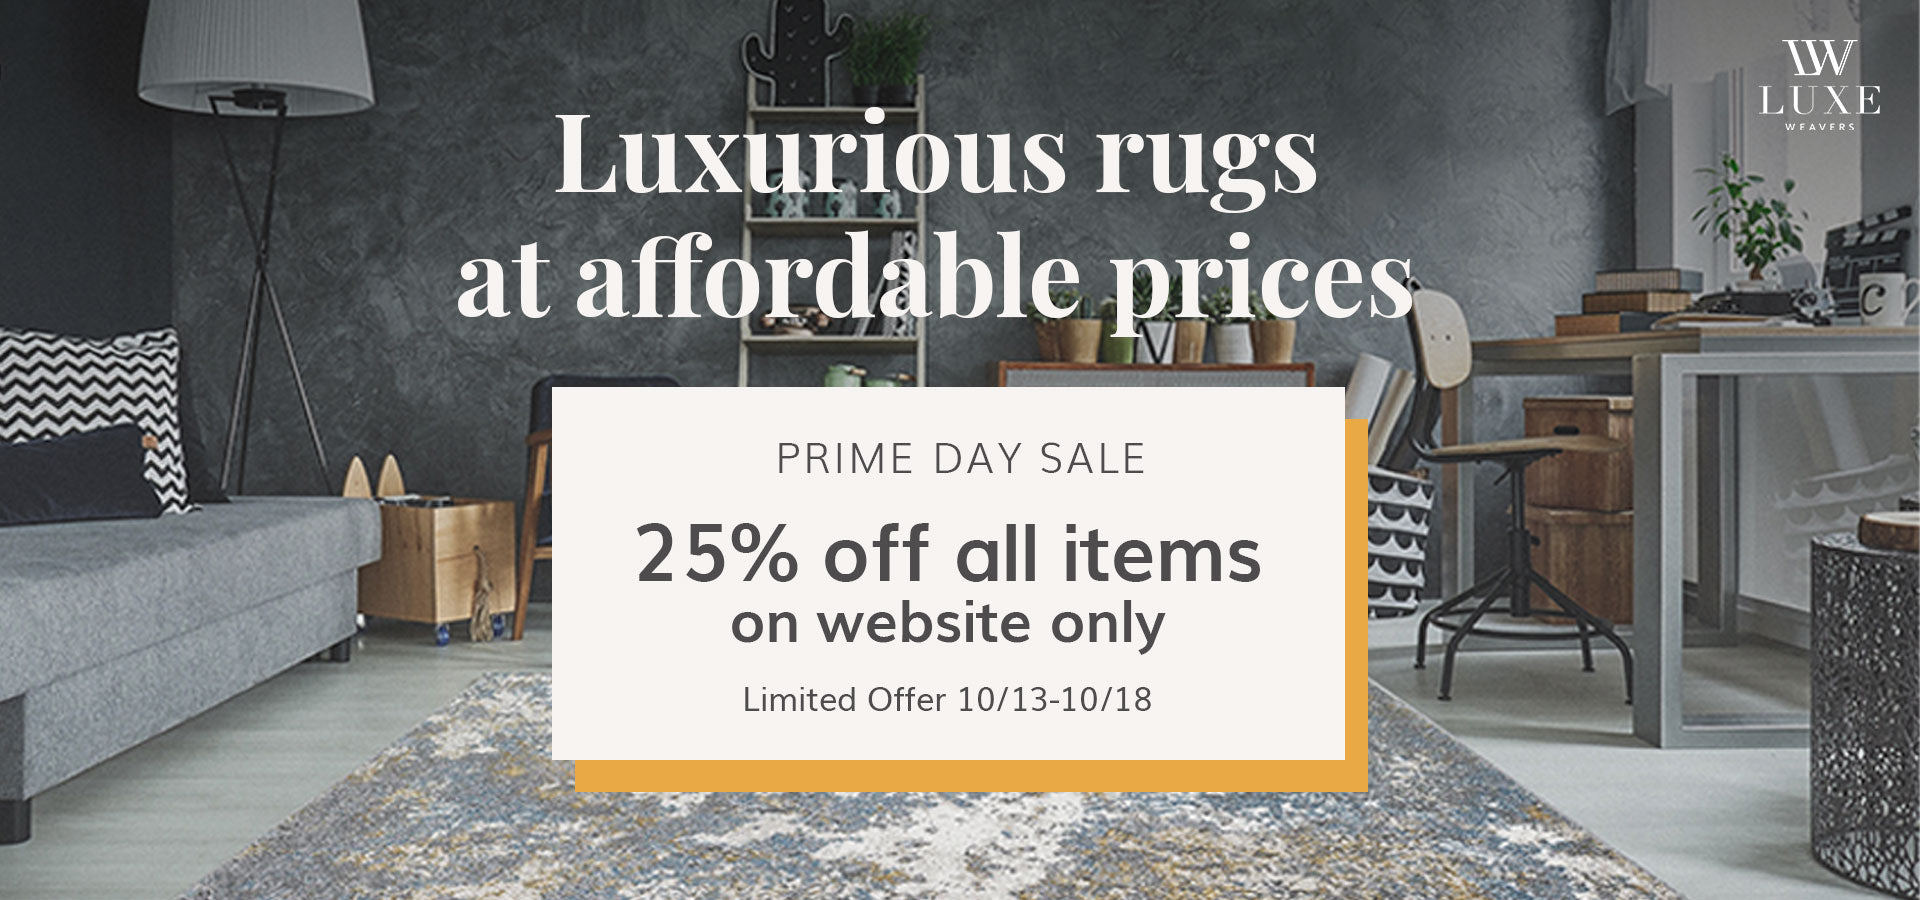 Luxe Weavers Prime Day 2020 Promotion Banner